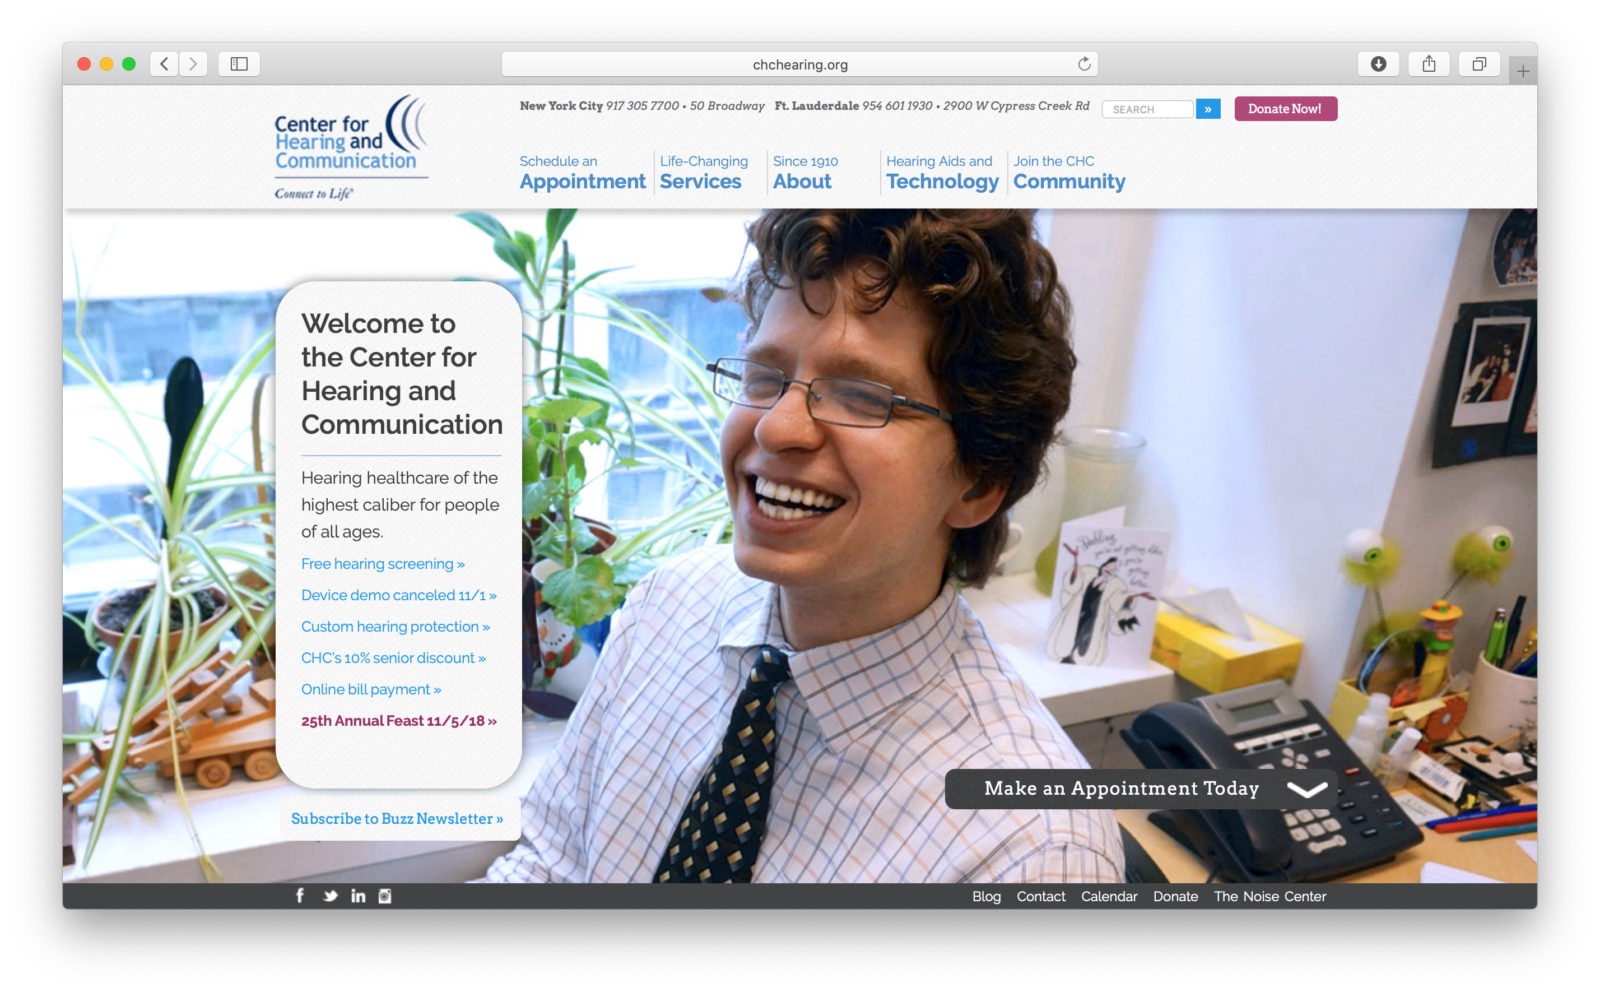 La Home page del Center for Hearing and Communication